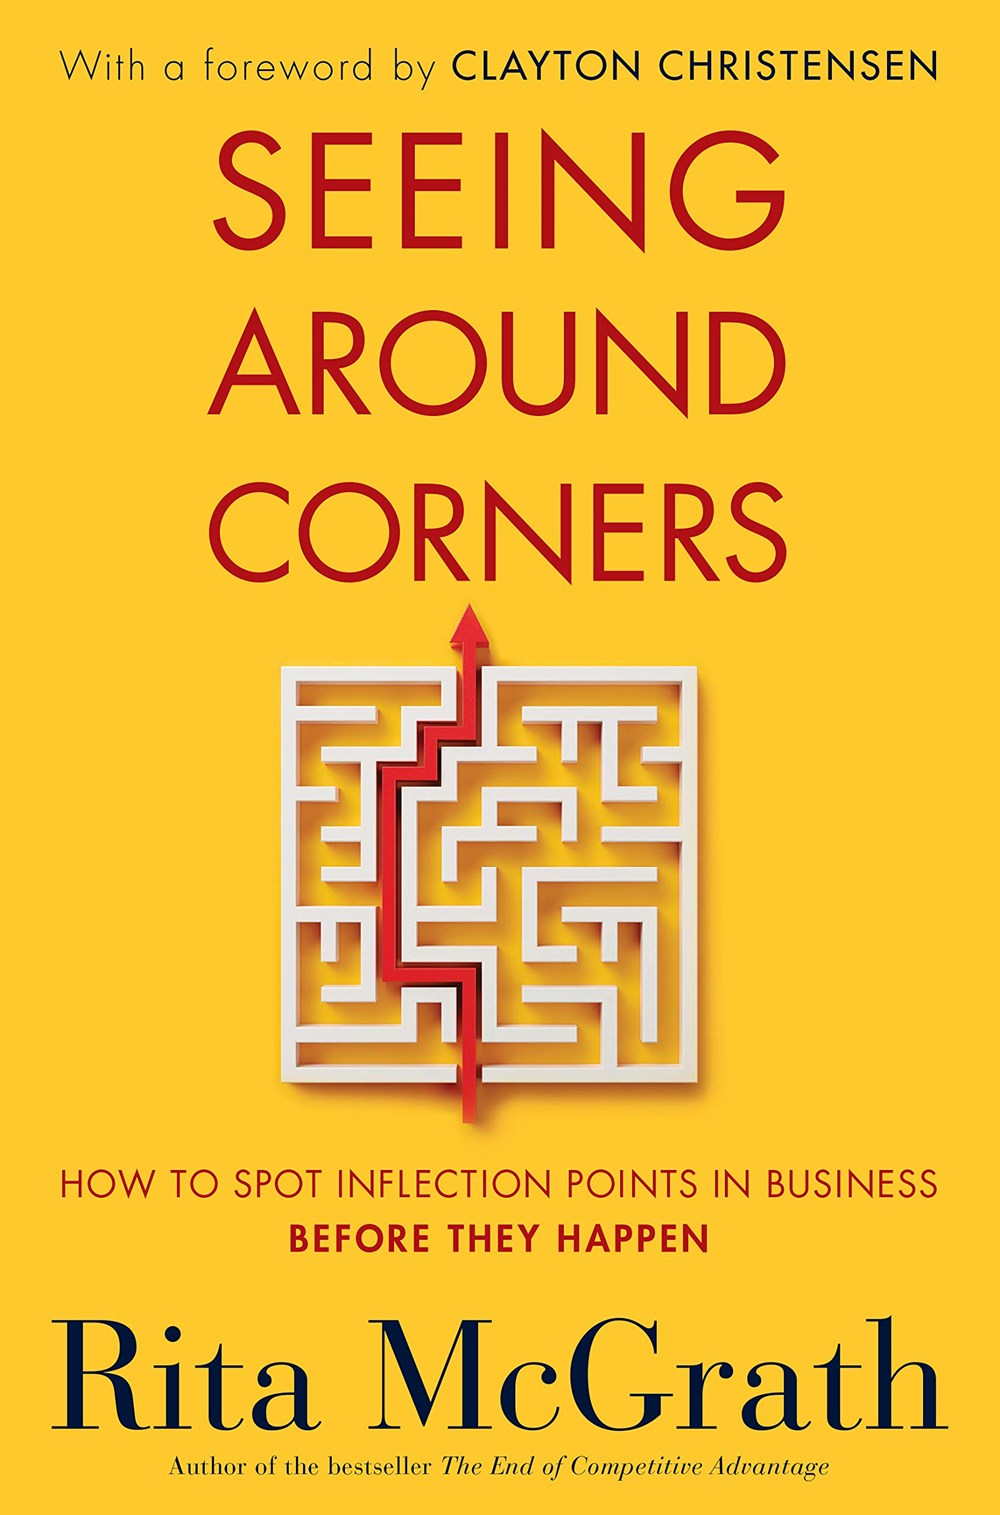 Seeing Around Corners How to Spot Inflection Points in Business Before They Happen